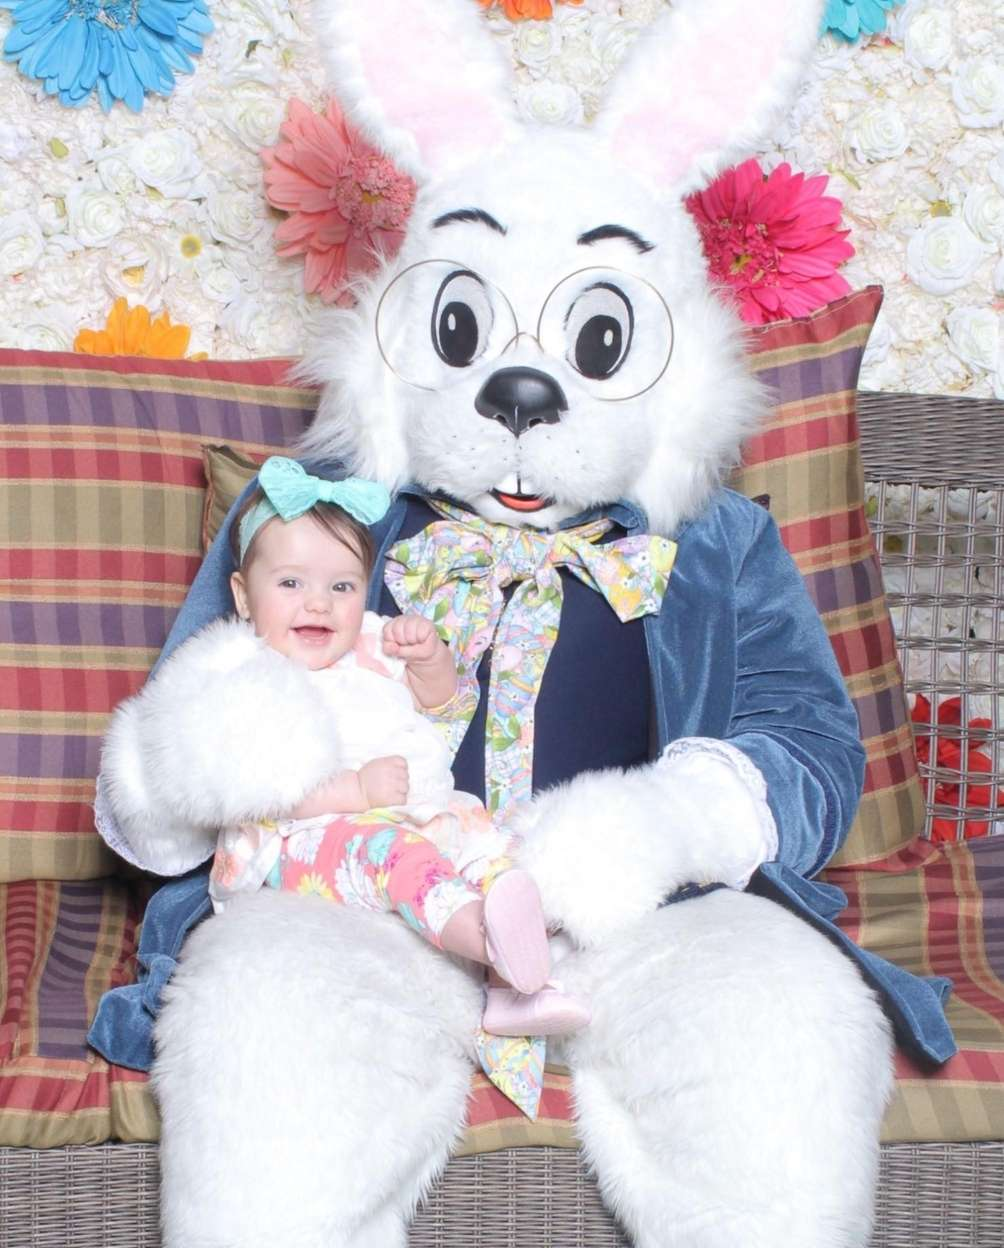 Laila loves the Easter Bunny!